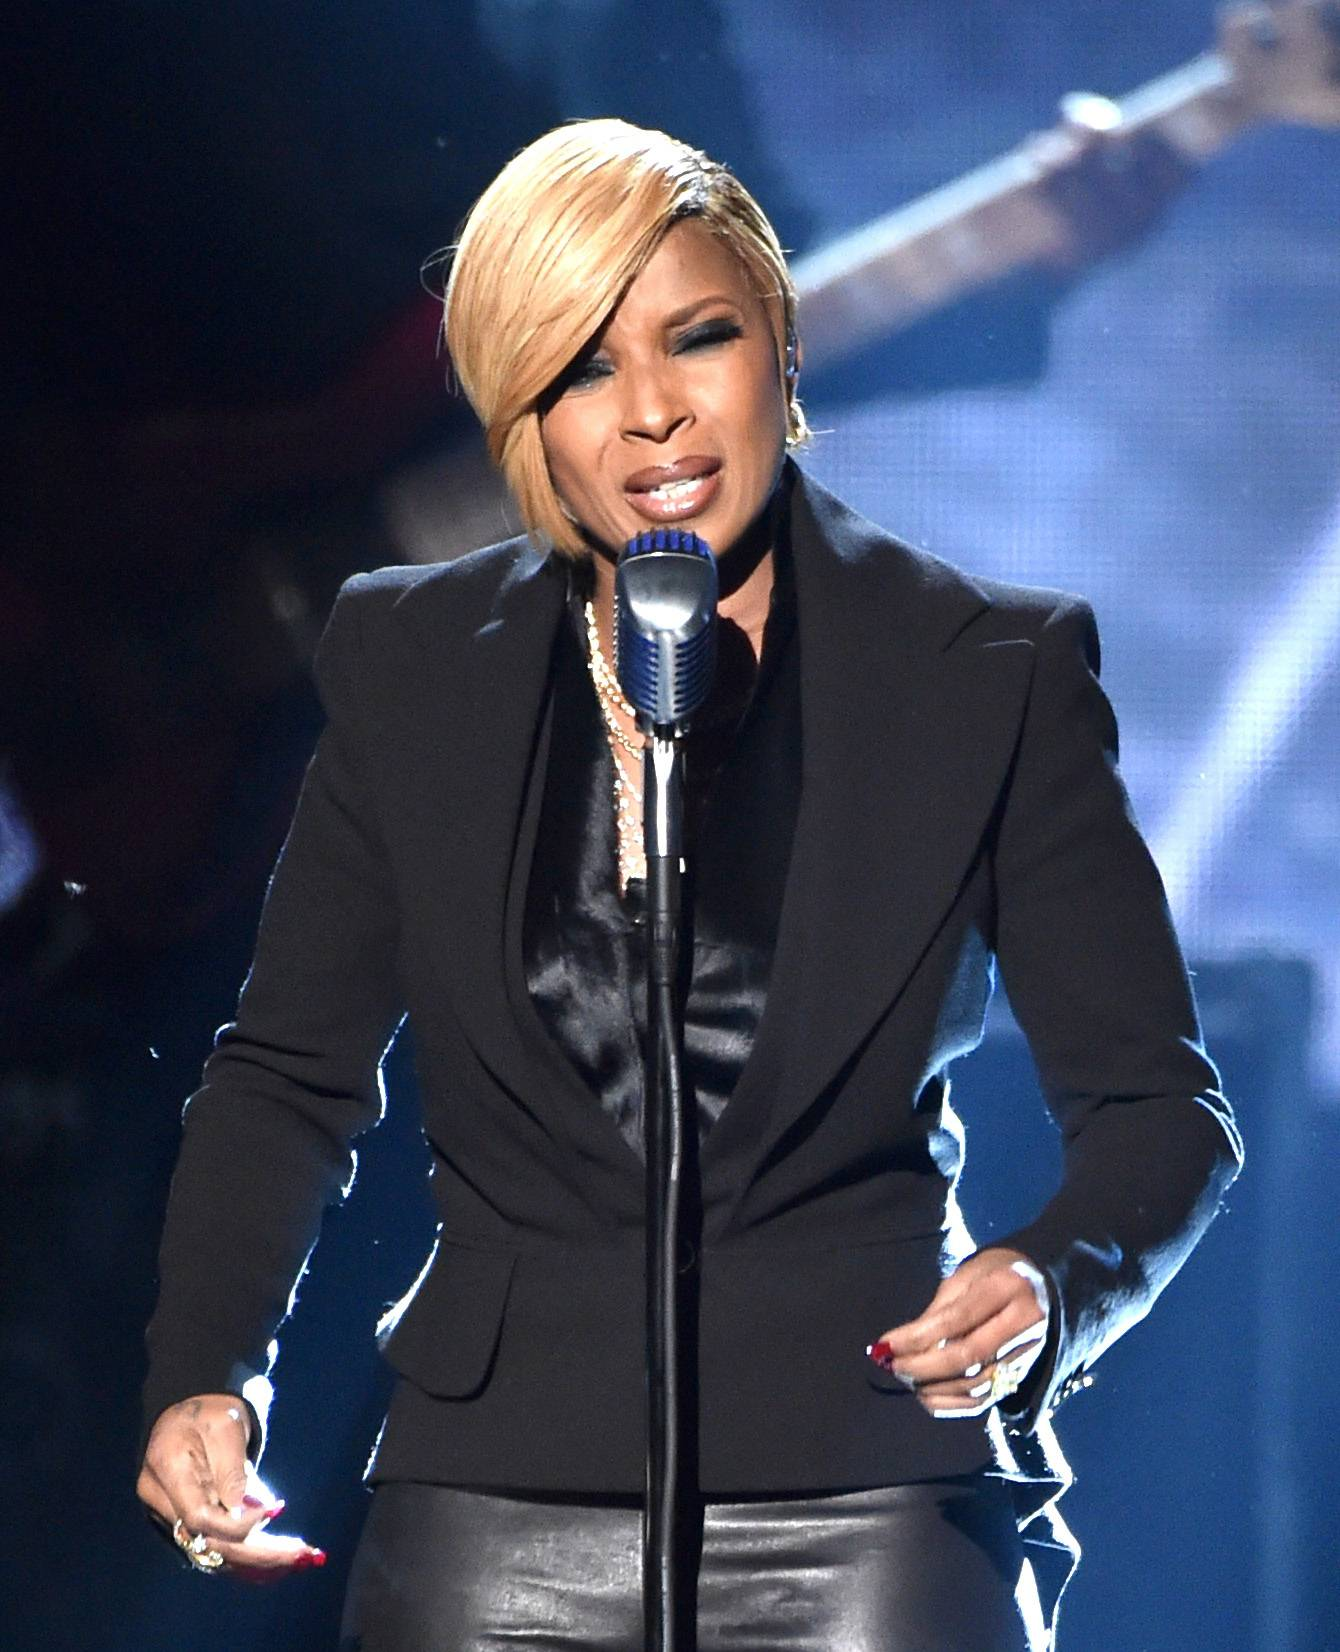 """Mary J. Blige - Queen Of Hip Hop Soul Mary J. Blige just dropped her new single """"Whole Damn Year"""" off of her latest album, The London Sessions. Let's see if she is going to be performing something new from the album. Fingers crossed! (Photo: Kevin Winter/Getty Images)"""